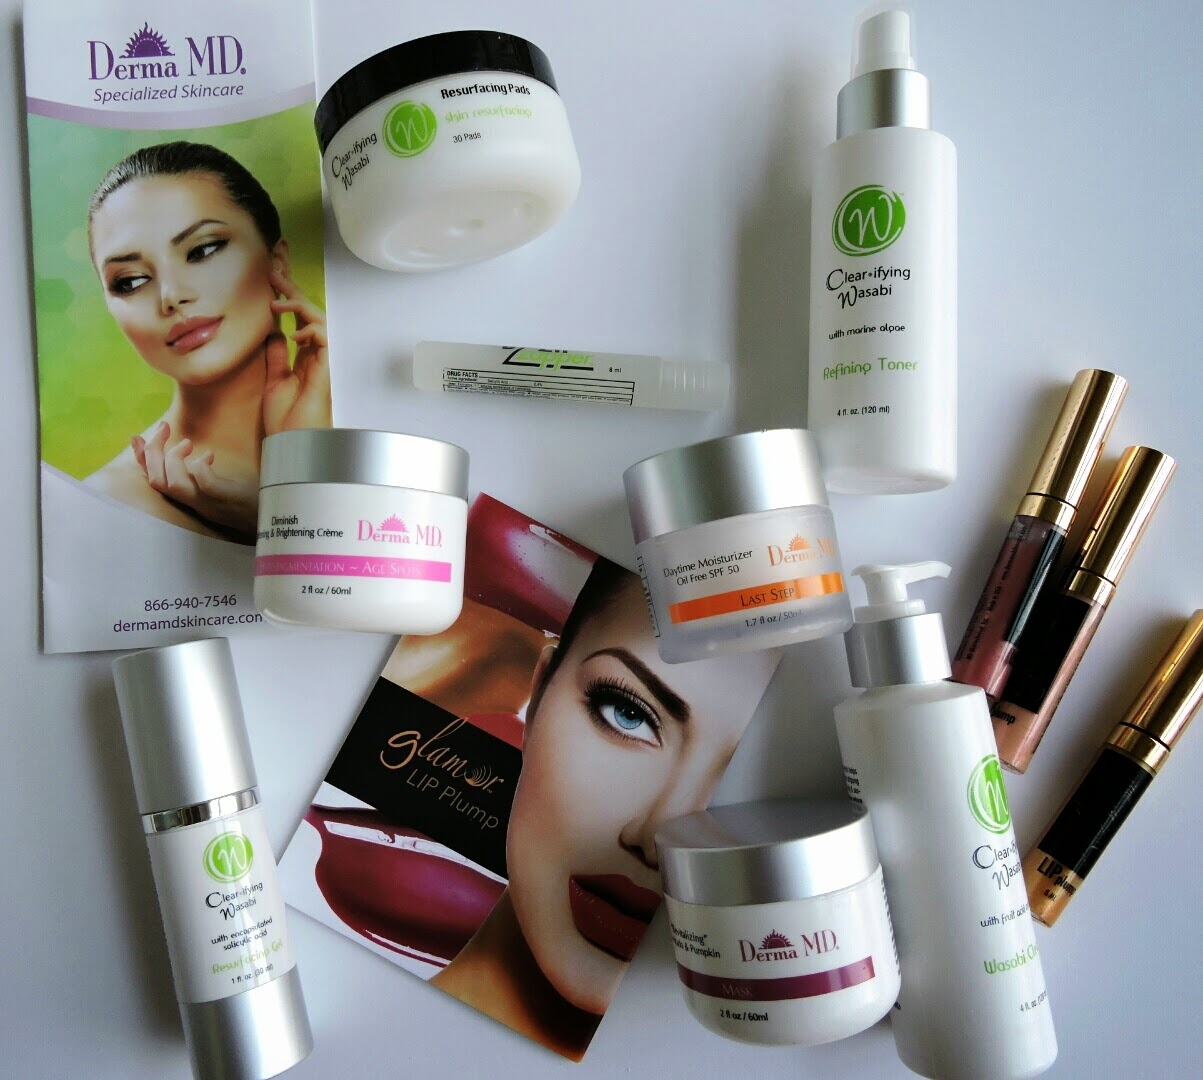 Derma MD Skincare Products Review and Giveaway Ends 11/12 #Skincare via www.productreviewmom.com